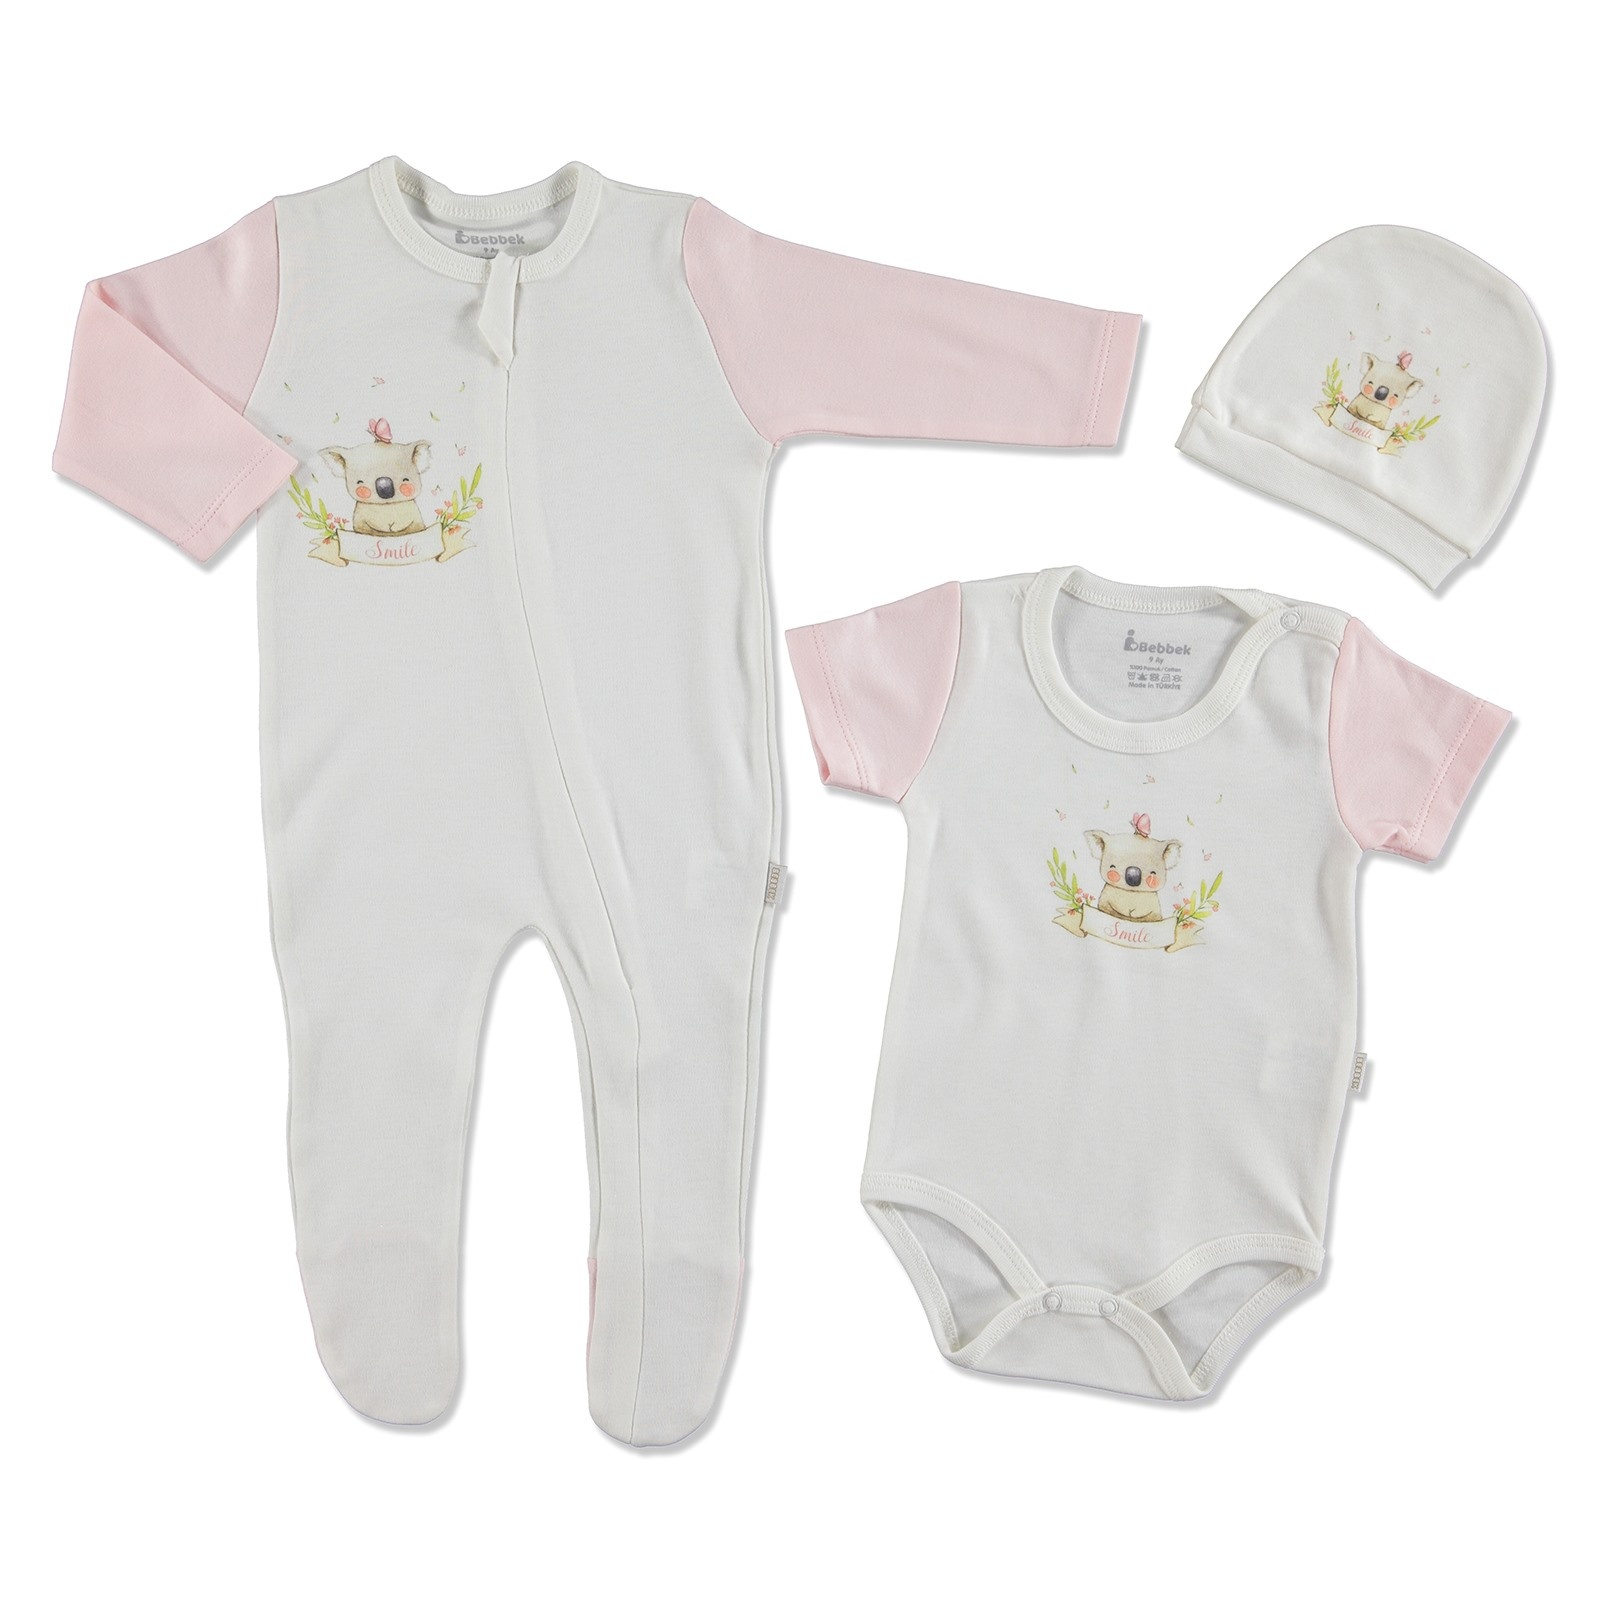 Ebebek Bebbek Summer Baby Girl Sweet Days Romper Bodysuit Hat 3 Pcs Set